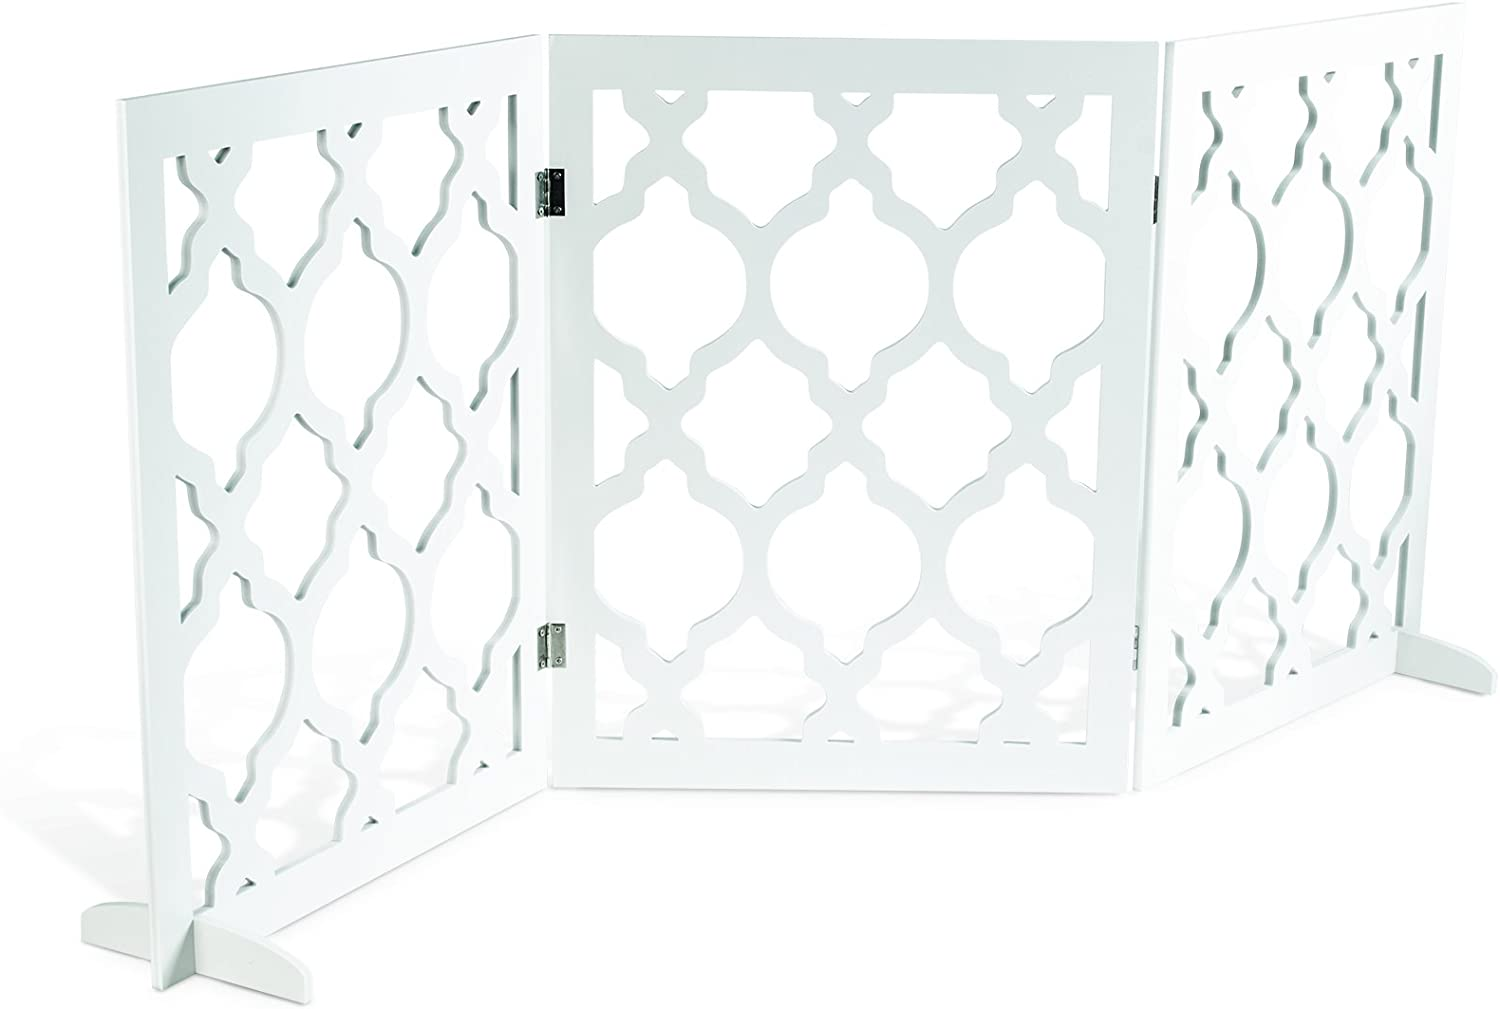 Pet Parade Decorative Pet Gate Indoor & Outdoor Use Opens to 55.5  L x 0.35  W x 24  H When Assembled Includes Feet for Stability Blends in with Home Decor